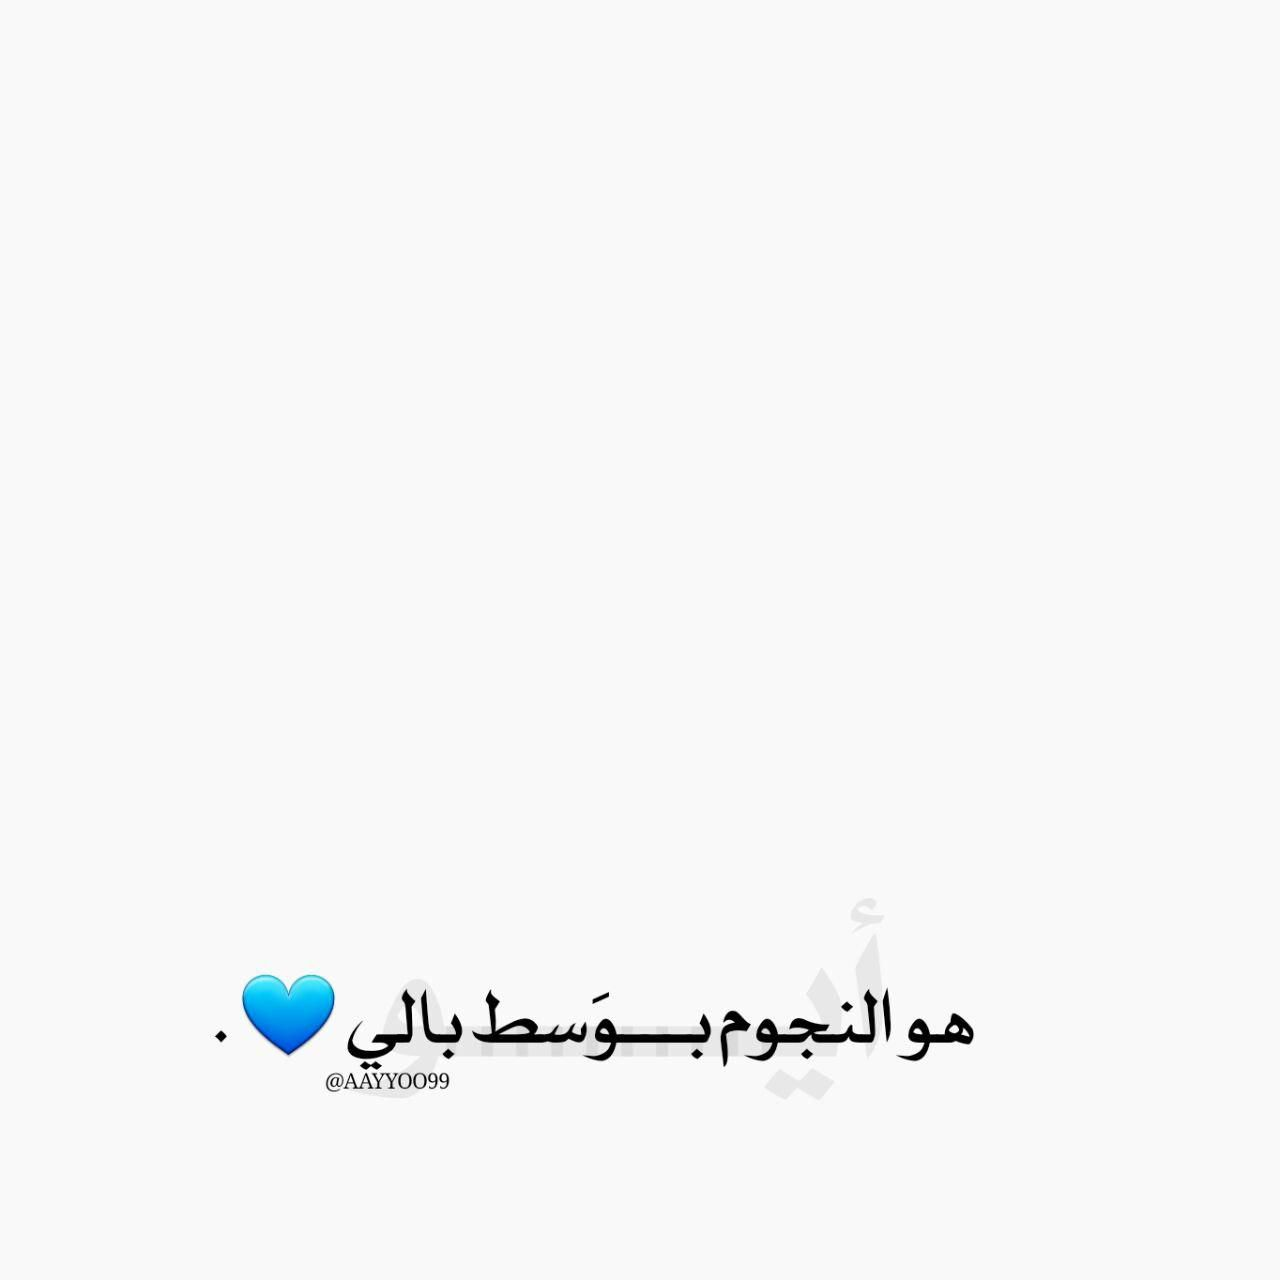 Pin By Om Hassan Zyaid On كلام شعر Quotations Love Words Arabic Words